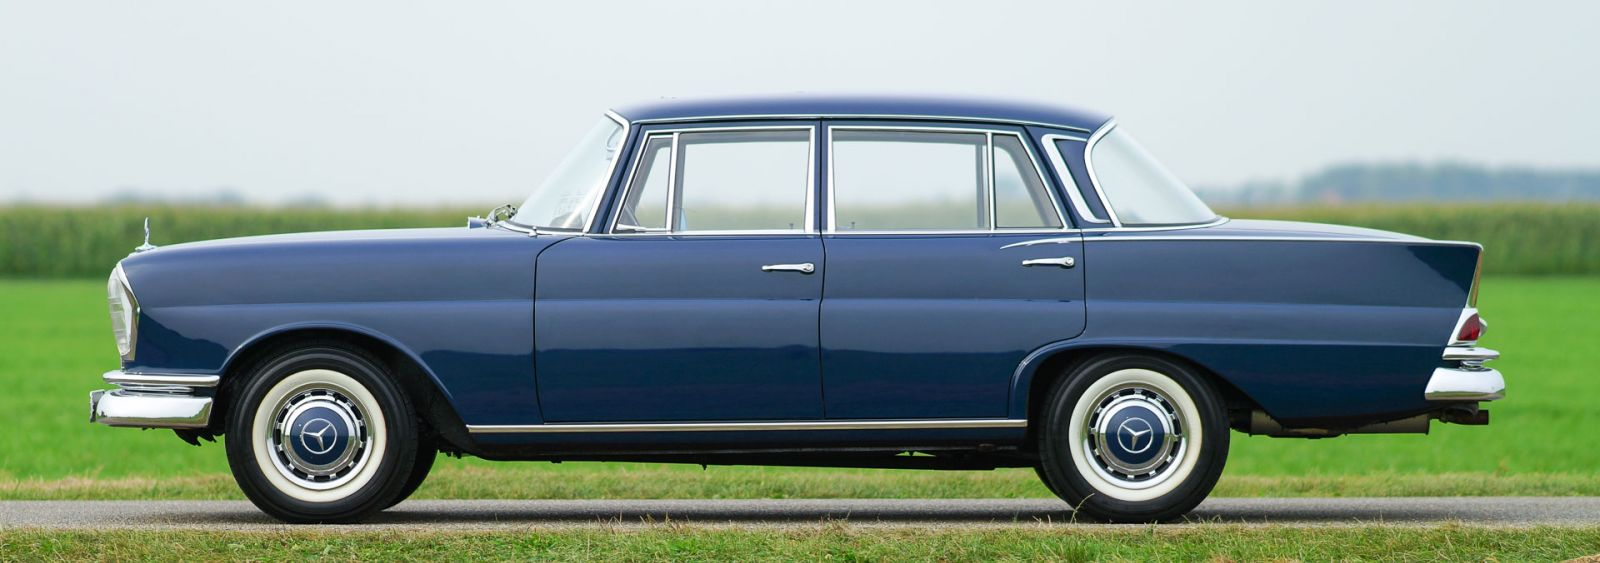 Mercedes benz 220 s 1964 welcome to classicargarage for Mercedes benz used cars in germany for sale